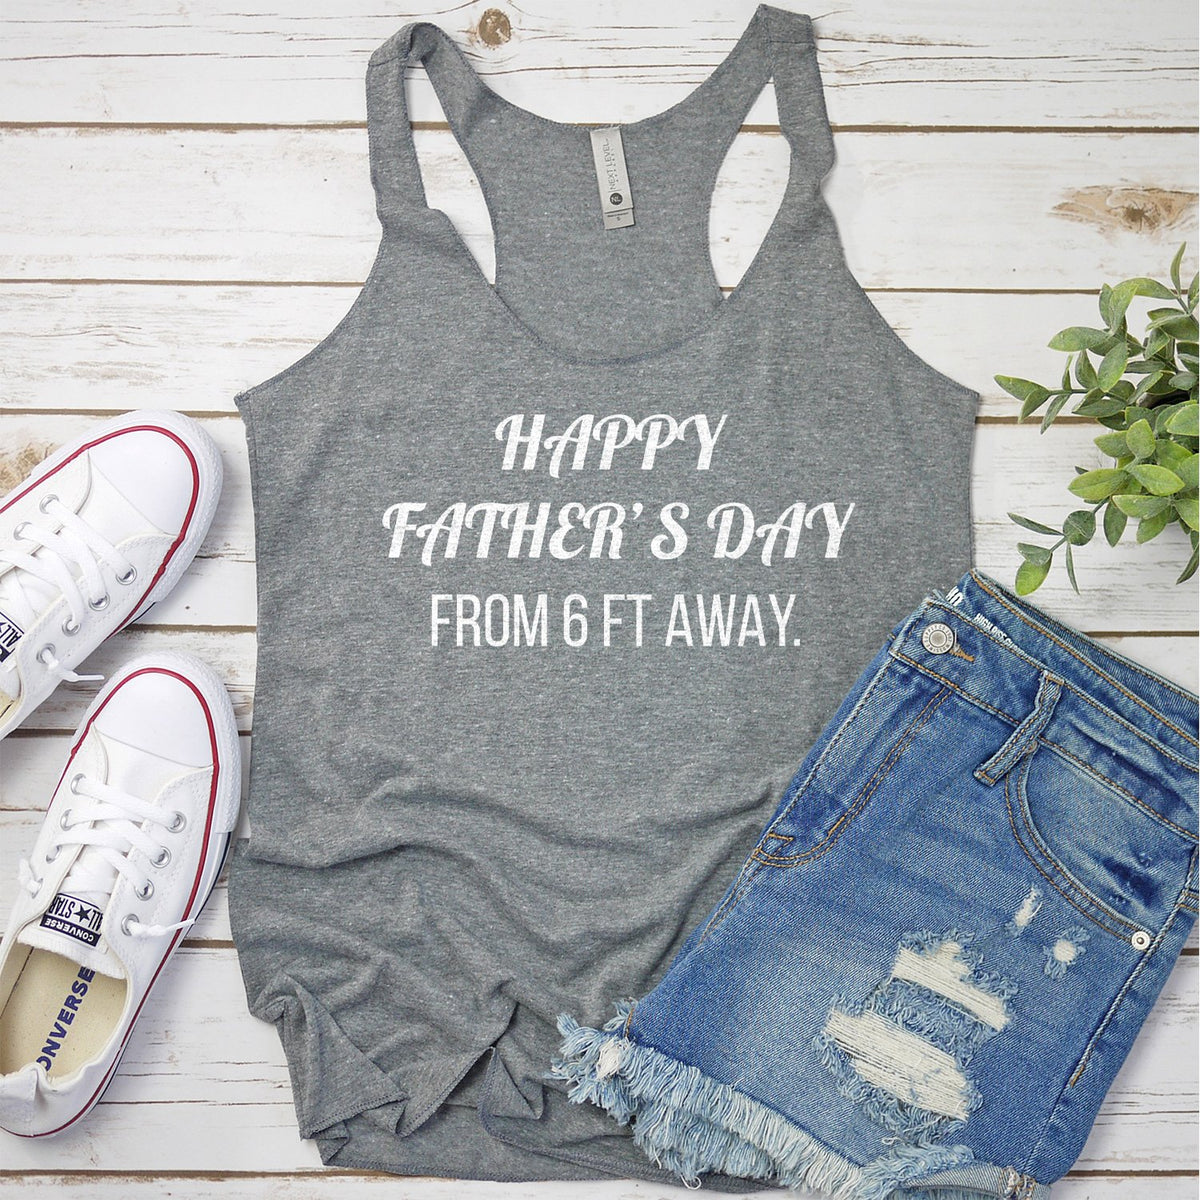 Happy Father's Day From 6 Ft Away - Tank Top Racerback